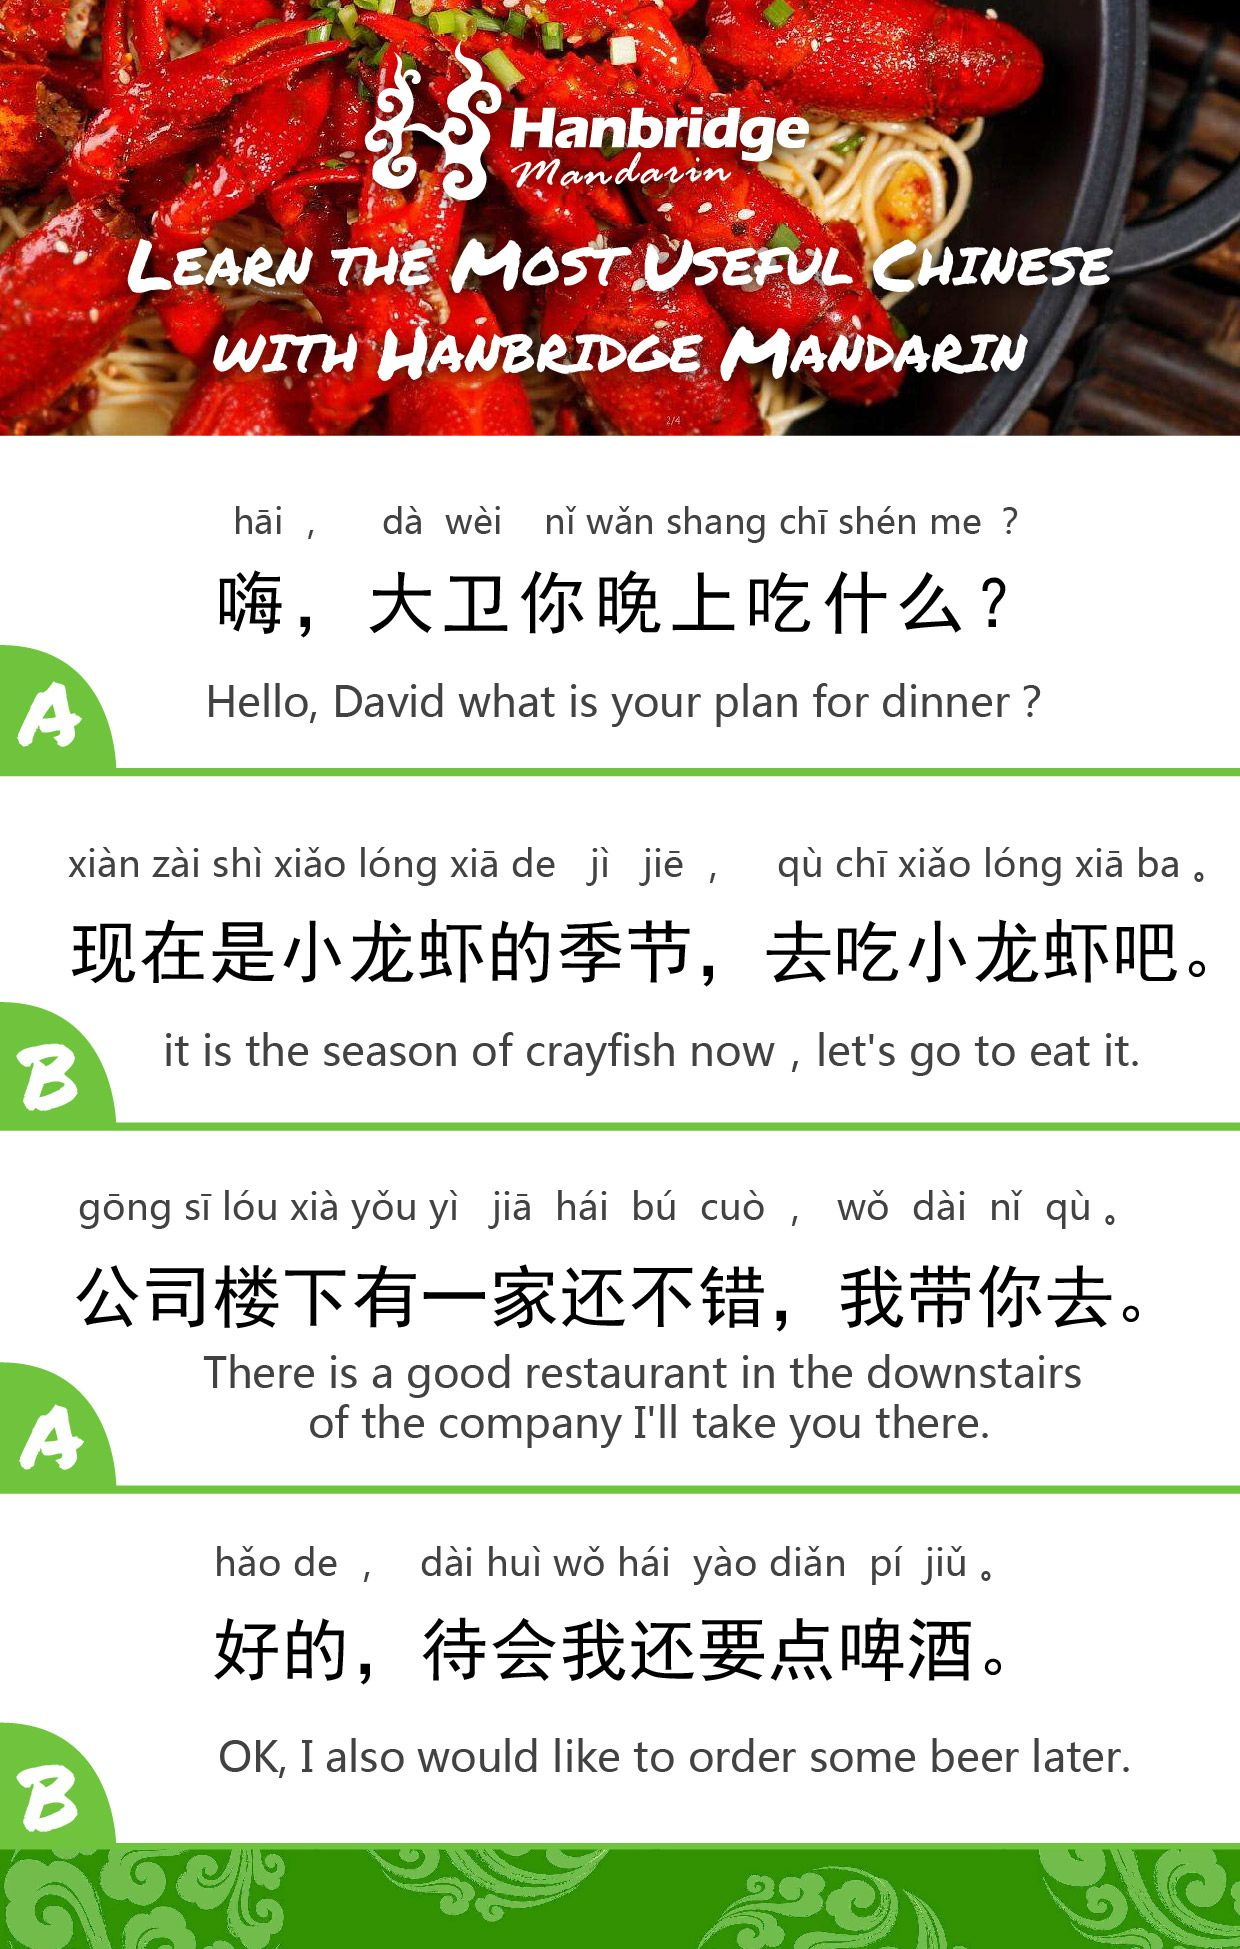 Ask Friends Out To Eat Crayfish In Chinese Mandarin Chinese Learning Chinese Language Learning Learn Chinese